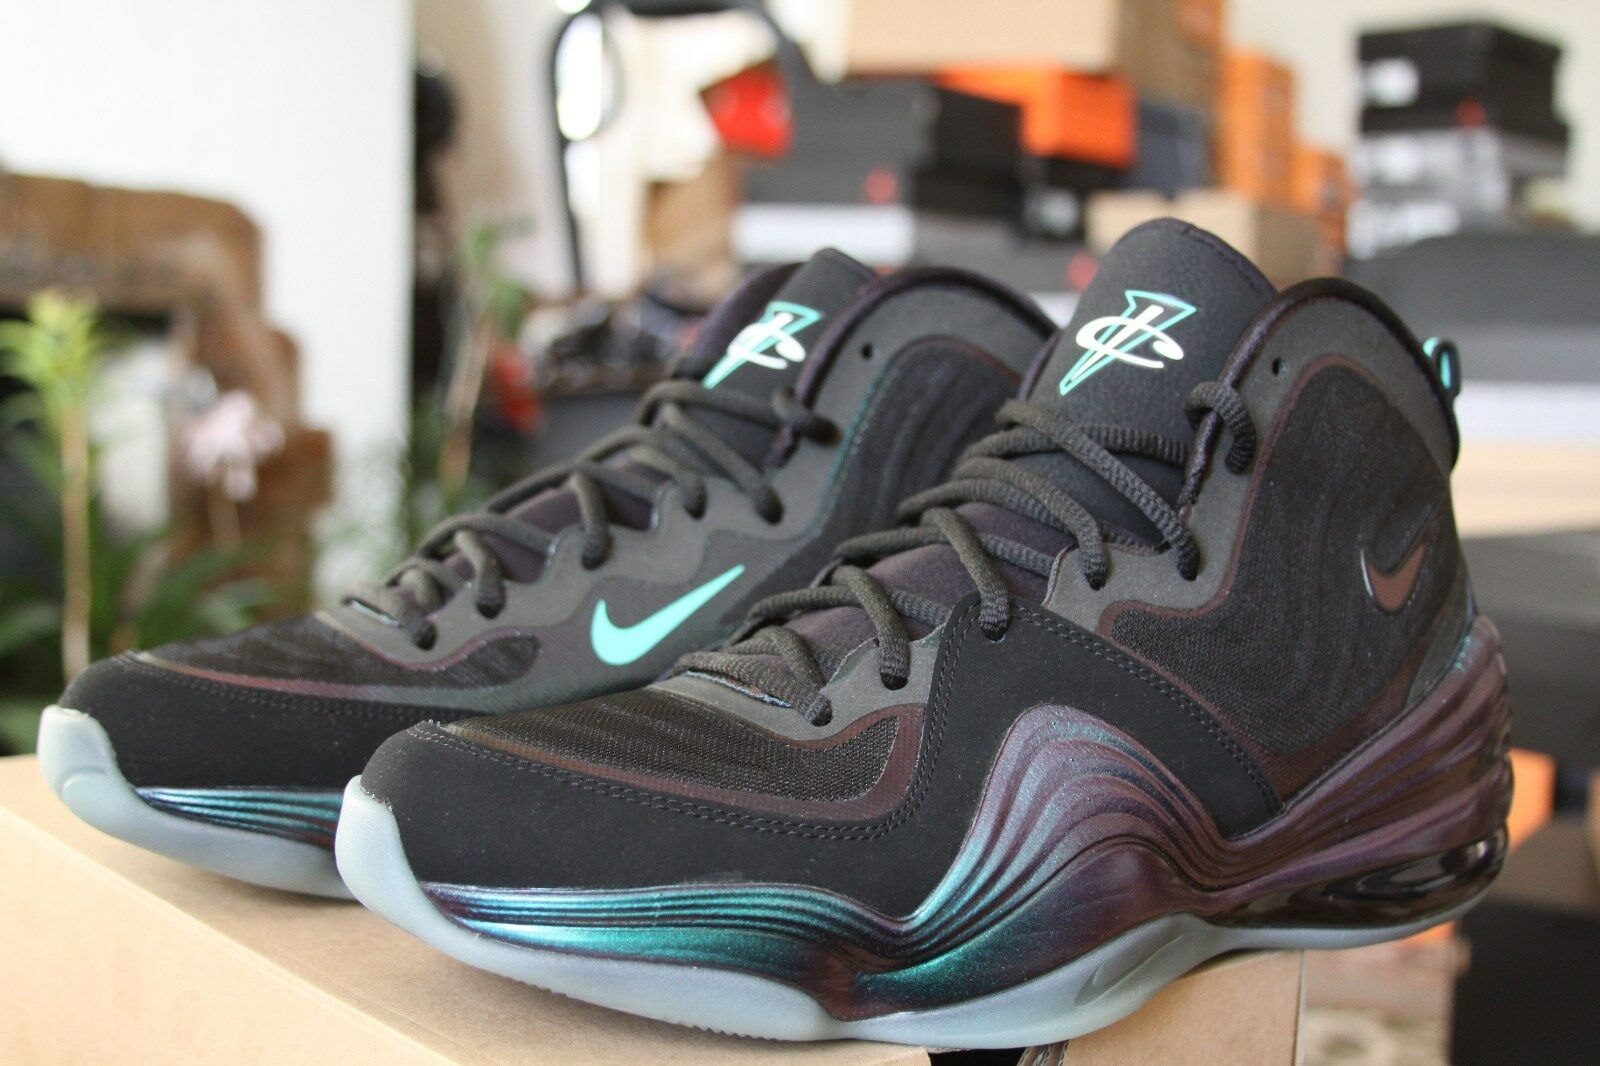 Nike Air Penny V 5 Invisibility Cloak!!! Jordan Retro Concord Bred Royal Special limited time